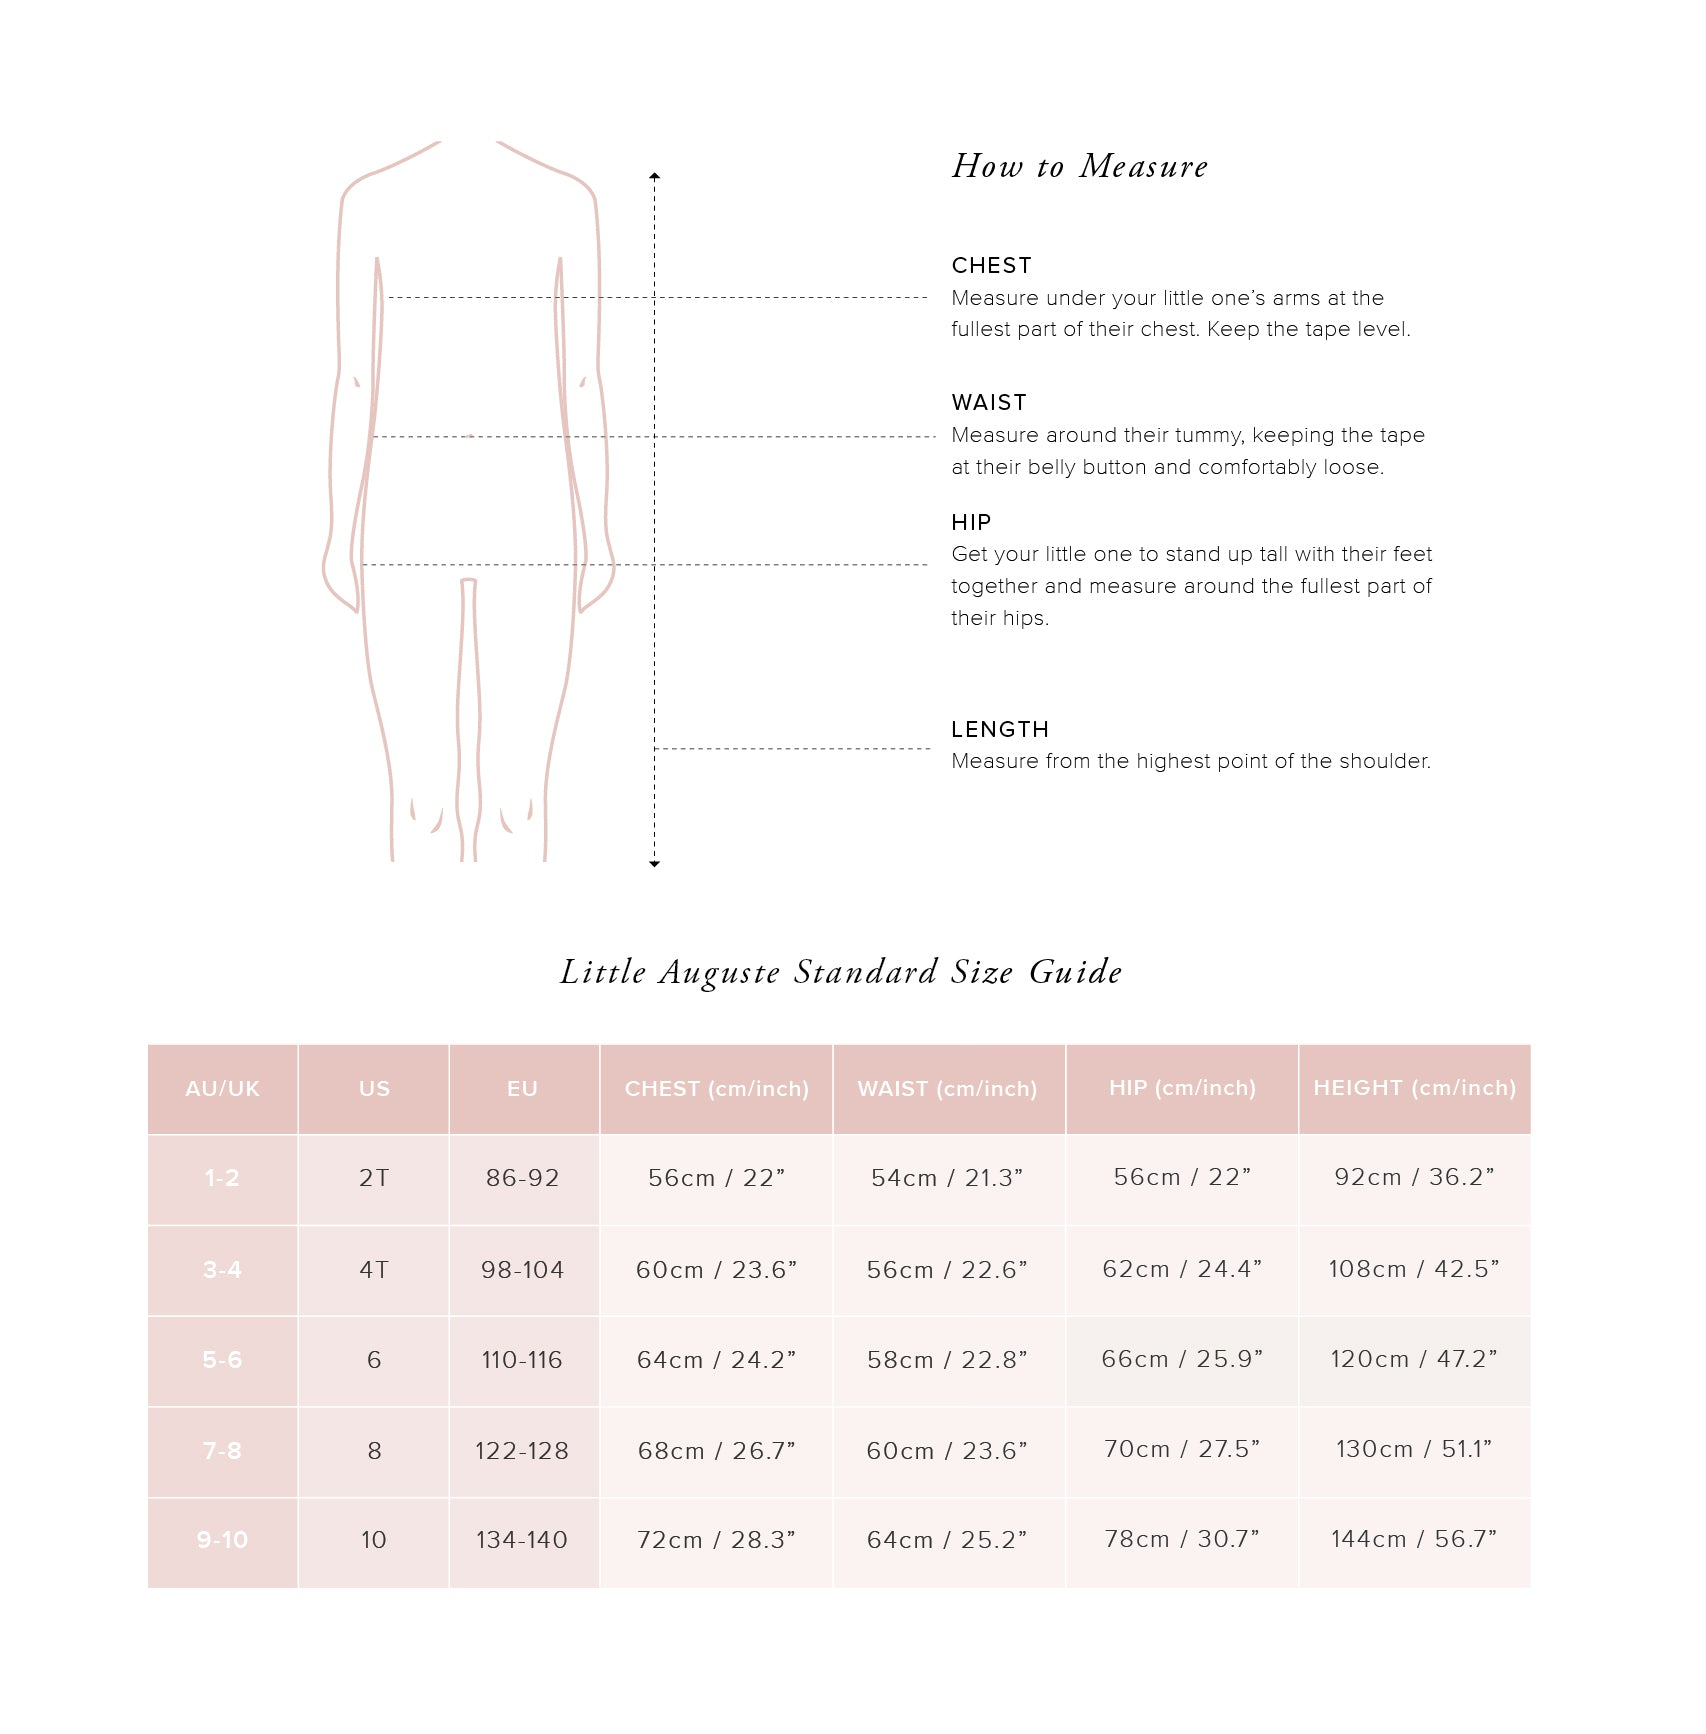 Little Auguste Size Guide - Little Standard